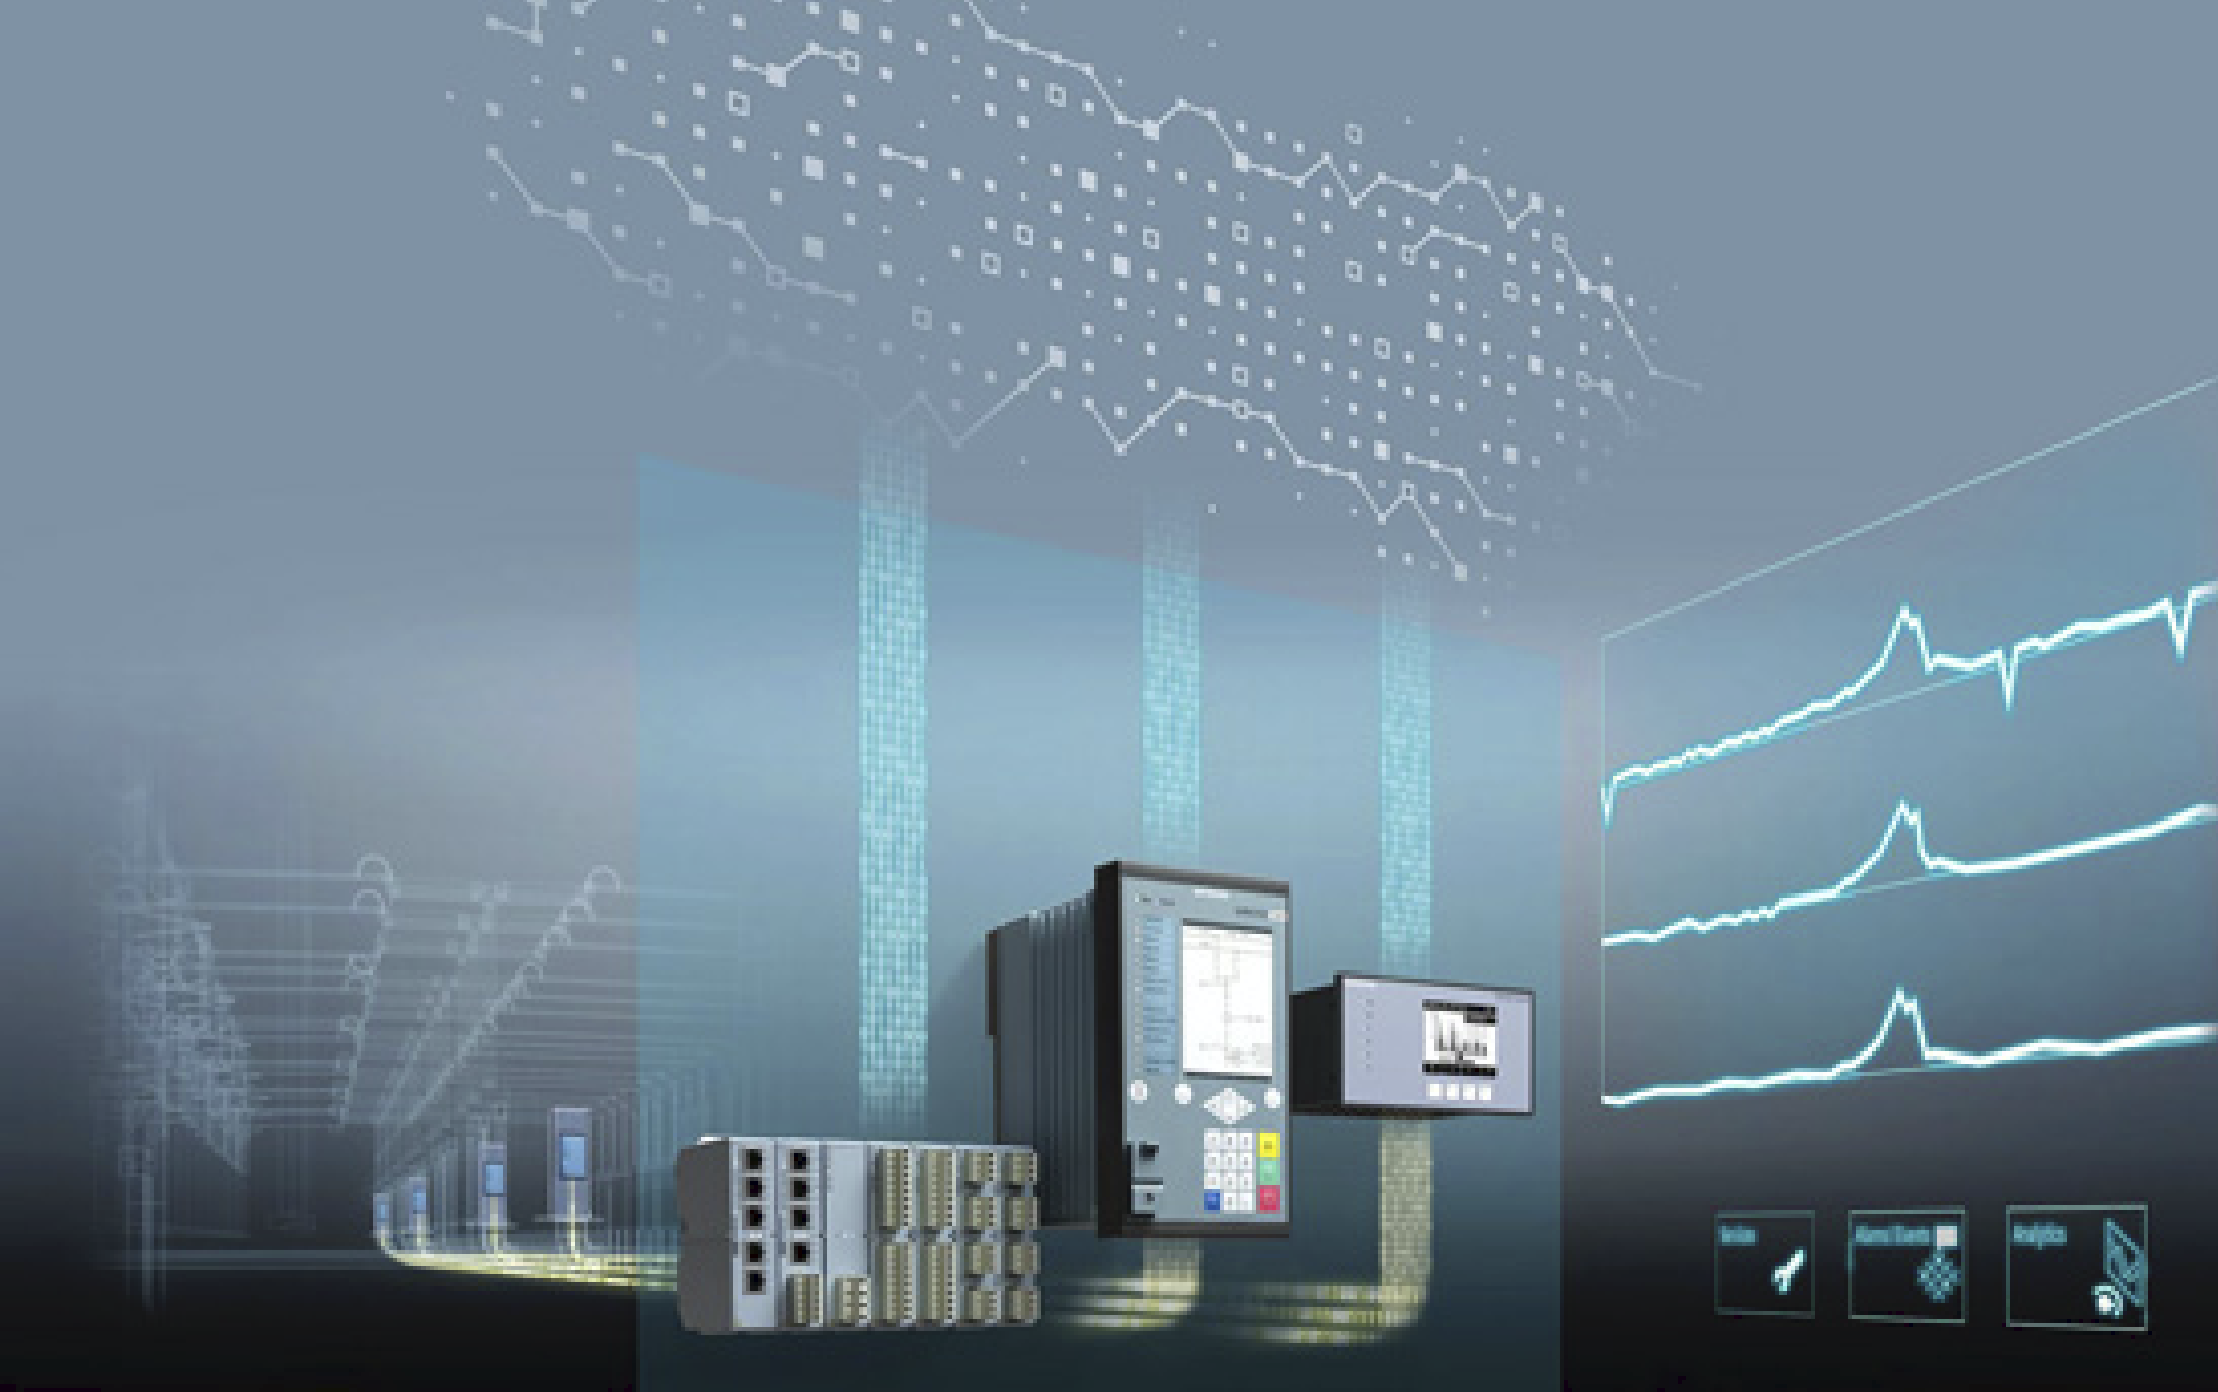 Siemens Perform Pilot Tests IoT Analytics and Applications for Power Grid